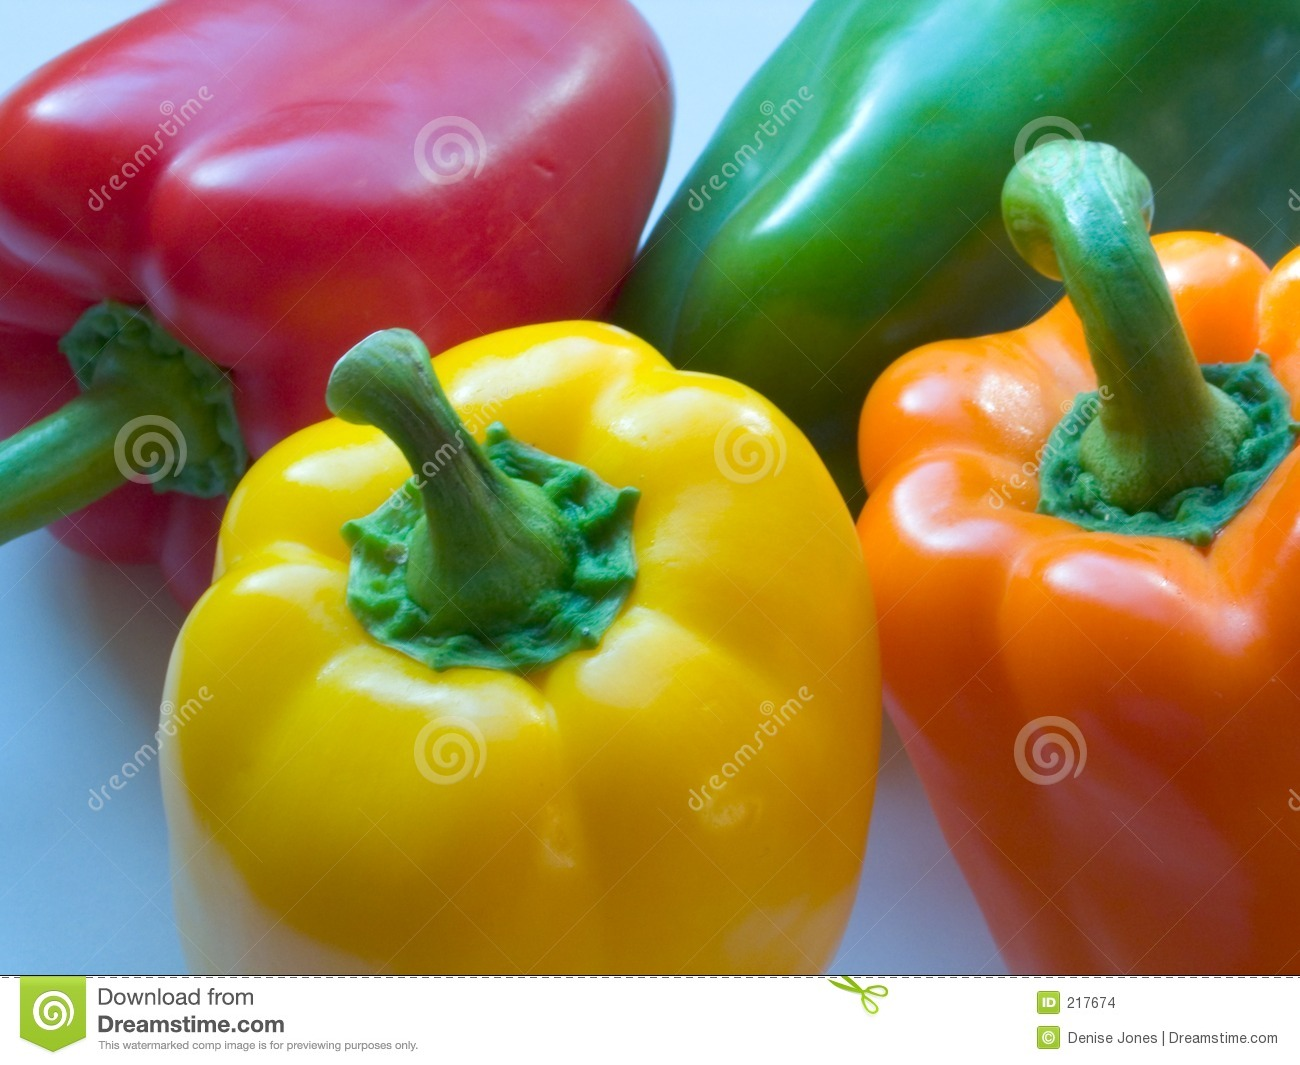 Download Four Mixed Peppers stock photo. Image of bite, background - 217674